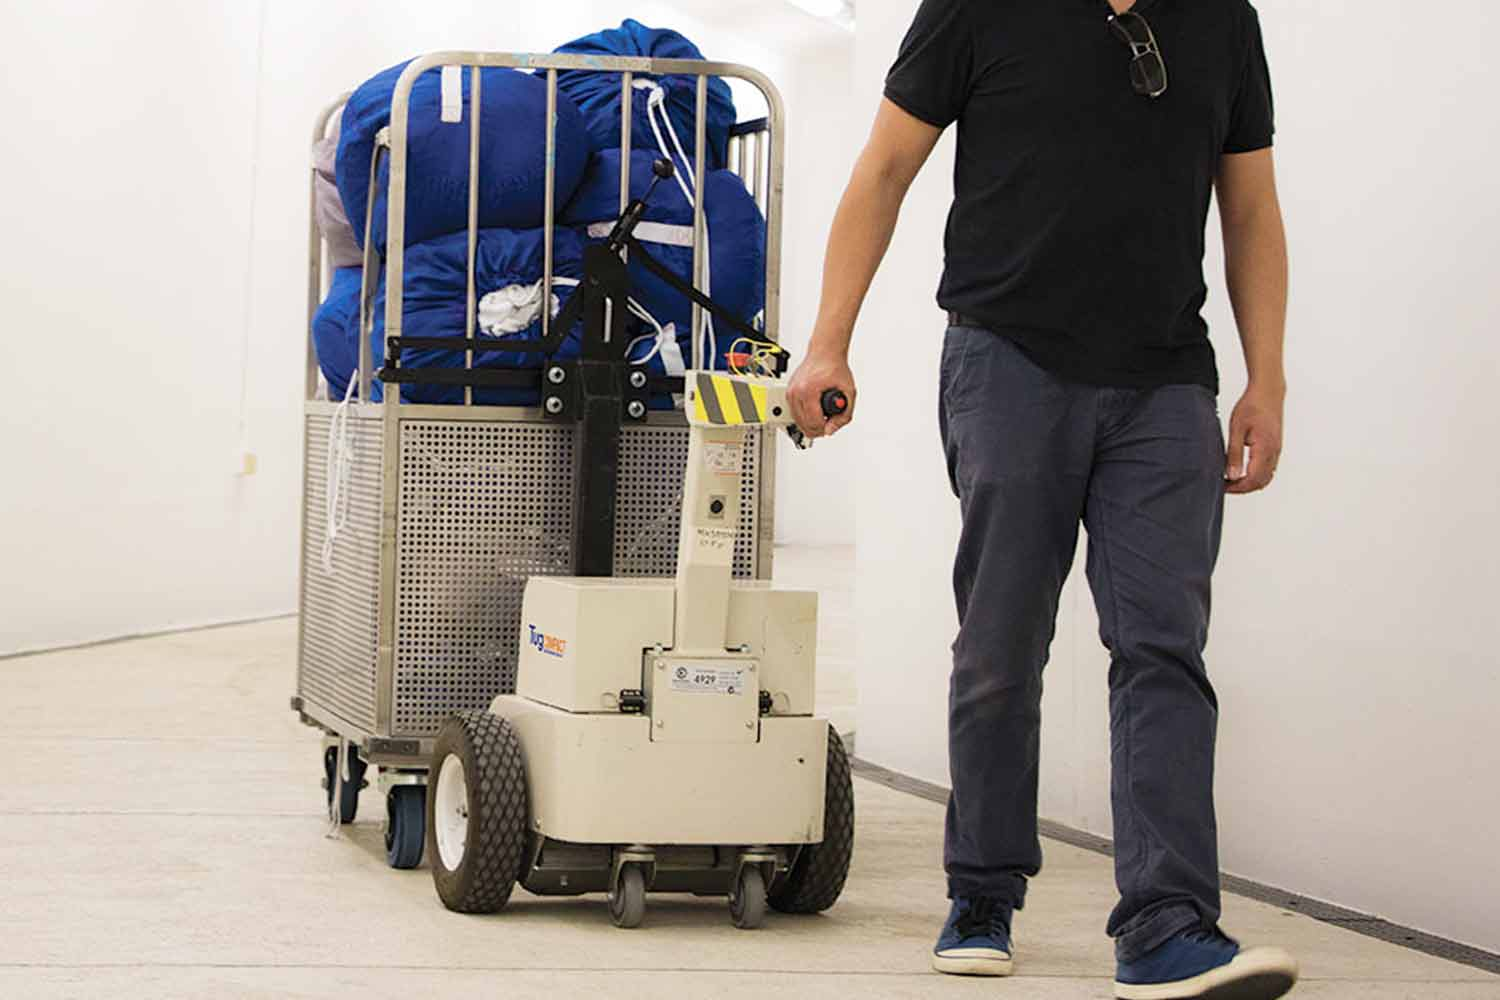 Electrodrive's Tug Compact Linen Mover in action